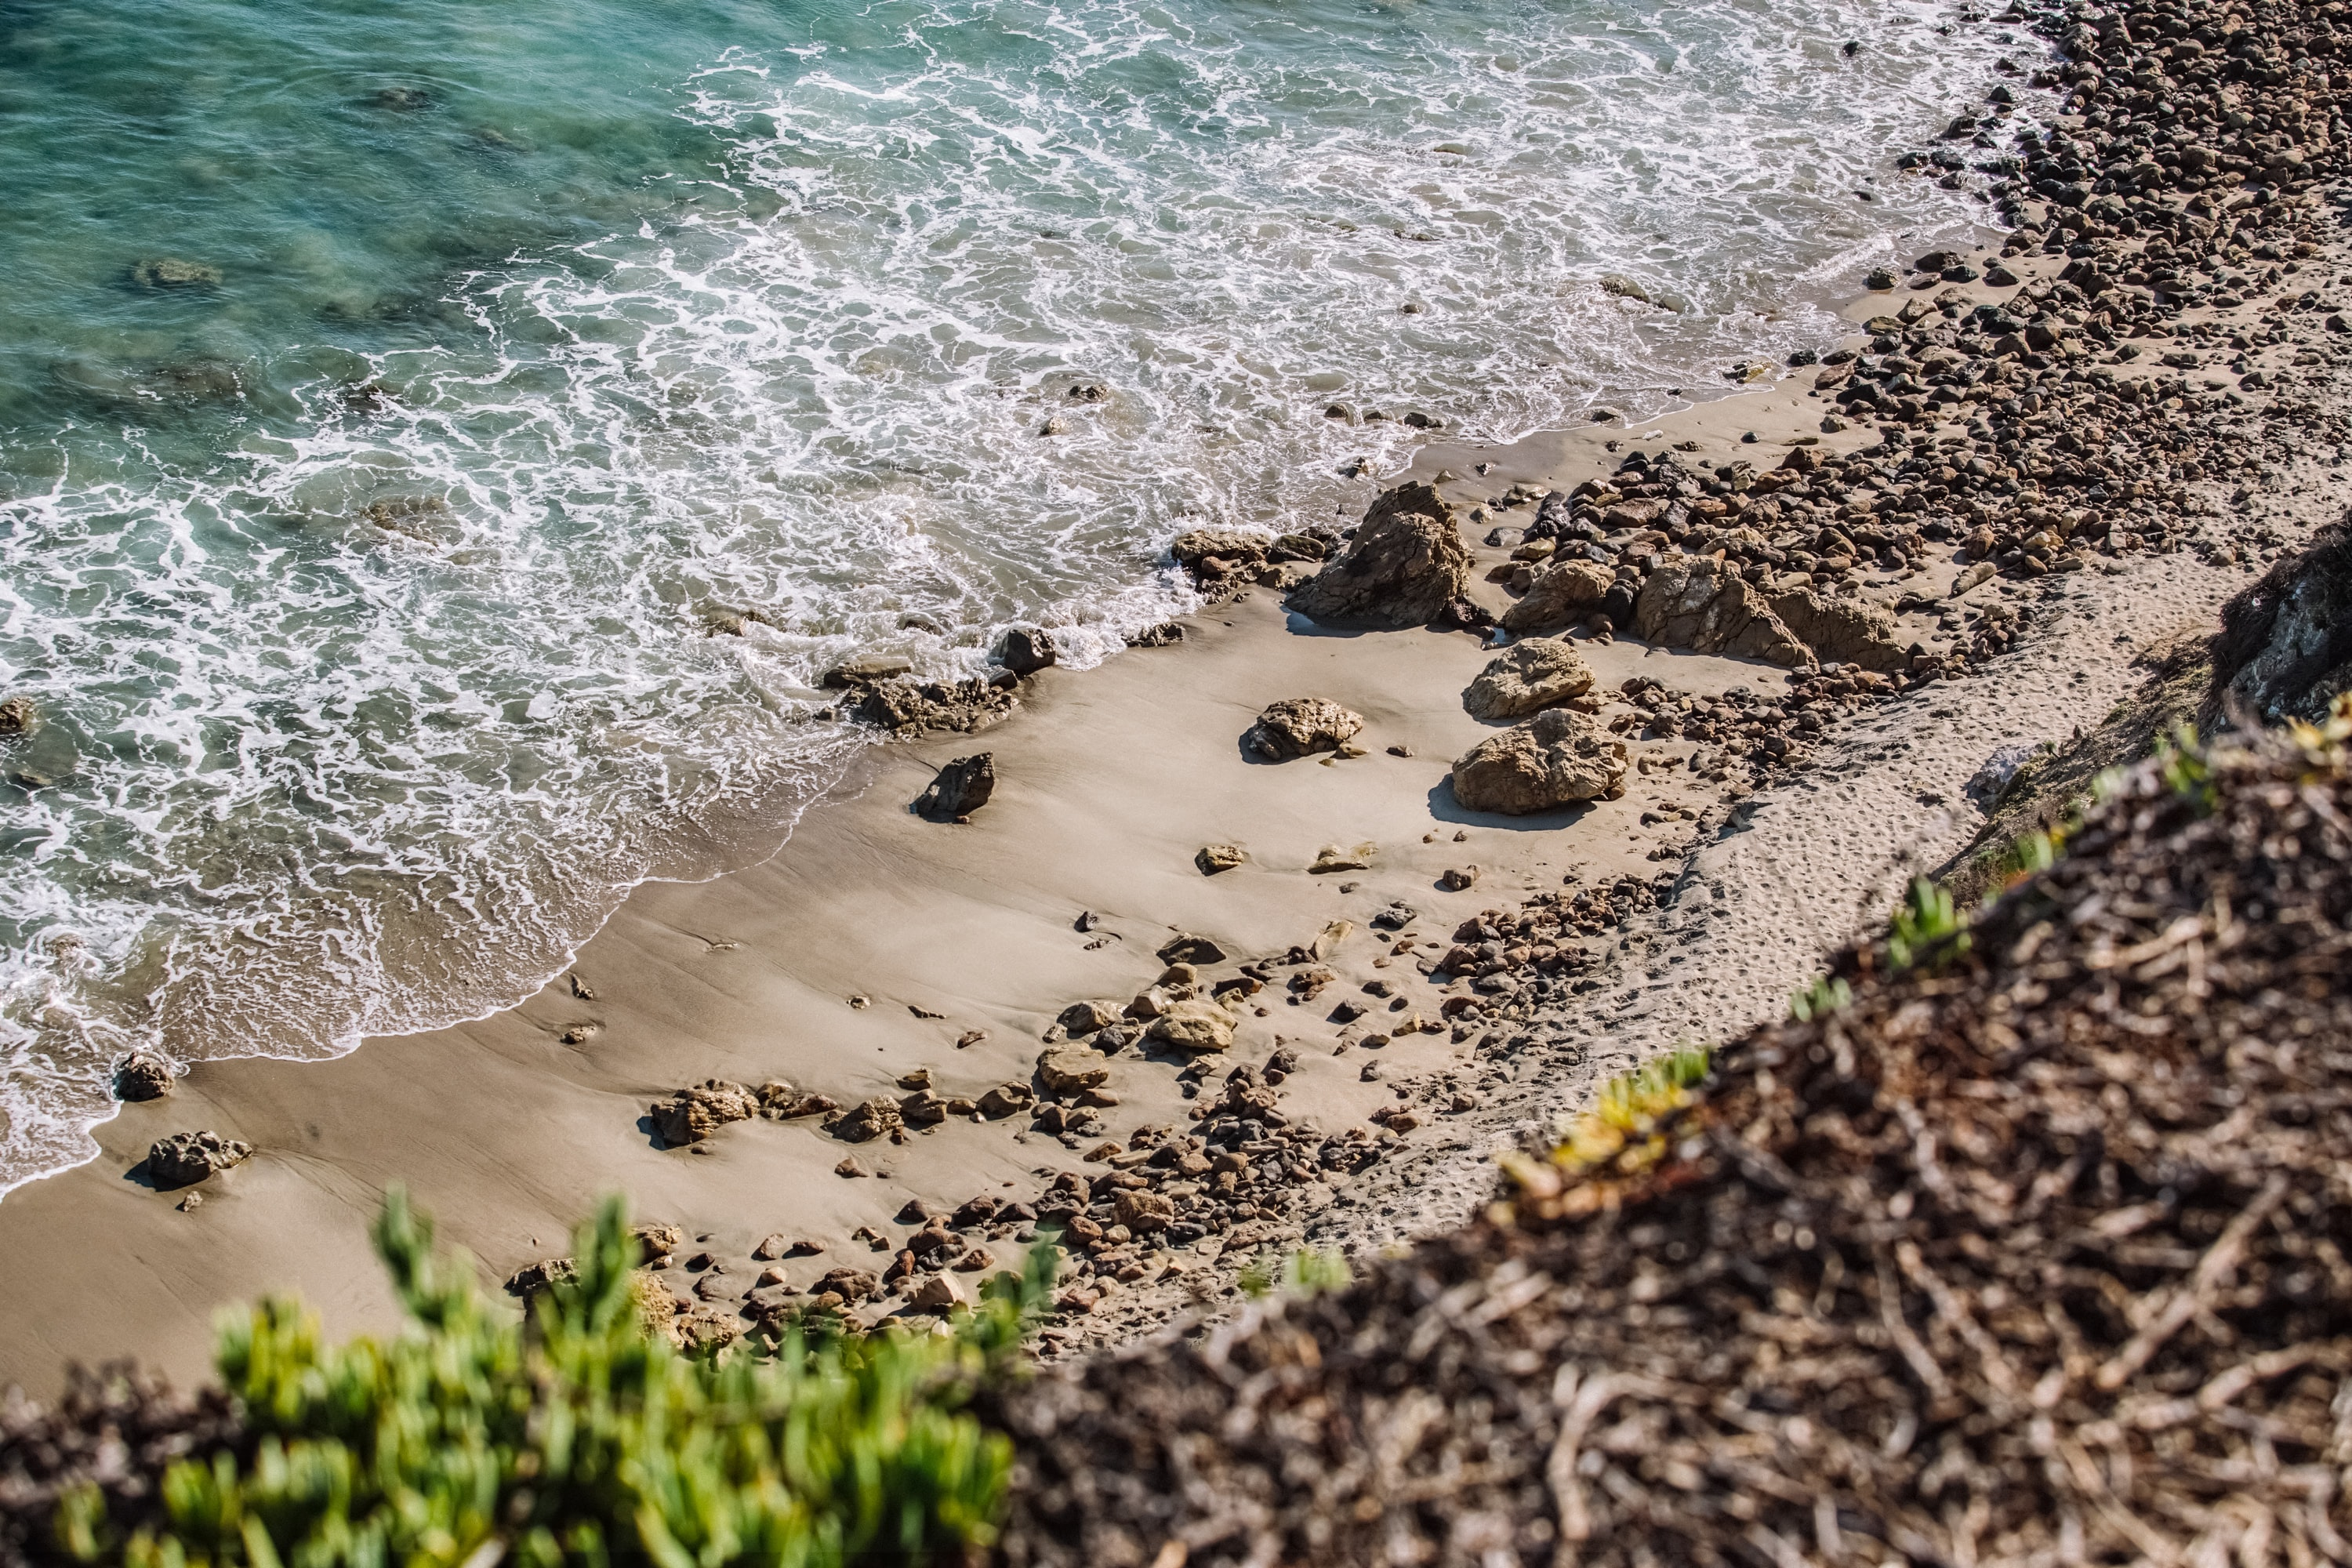 Ocean washing on the sandy and rocky coastline viewed from the hill above at Point Dume State Beach